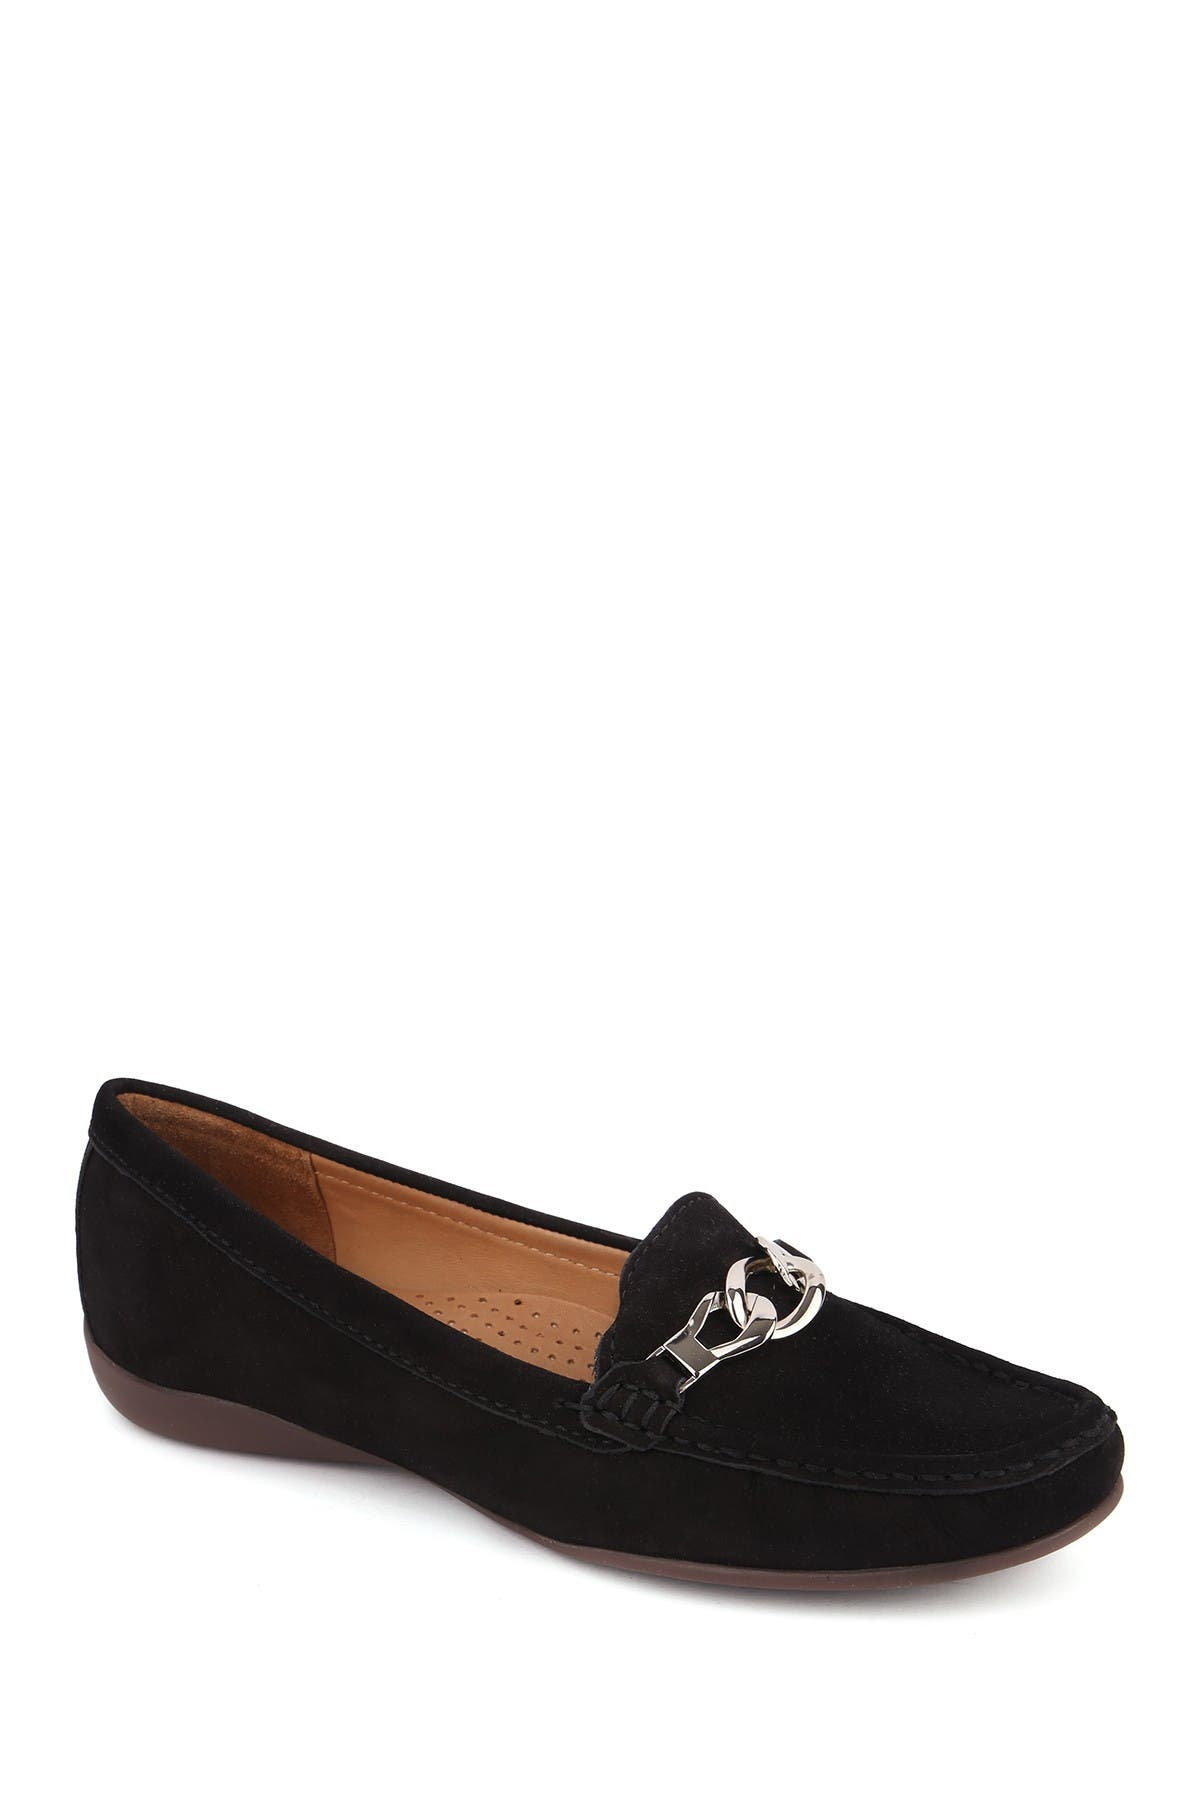 Image of Driver Club USA Colorado Spring Chain Buckle Loafer